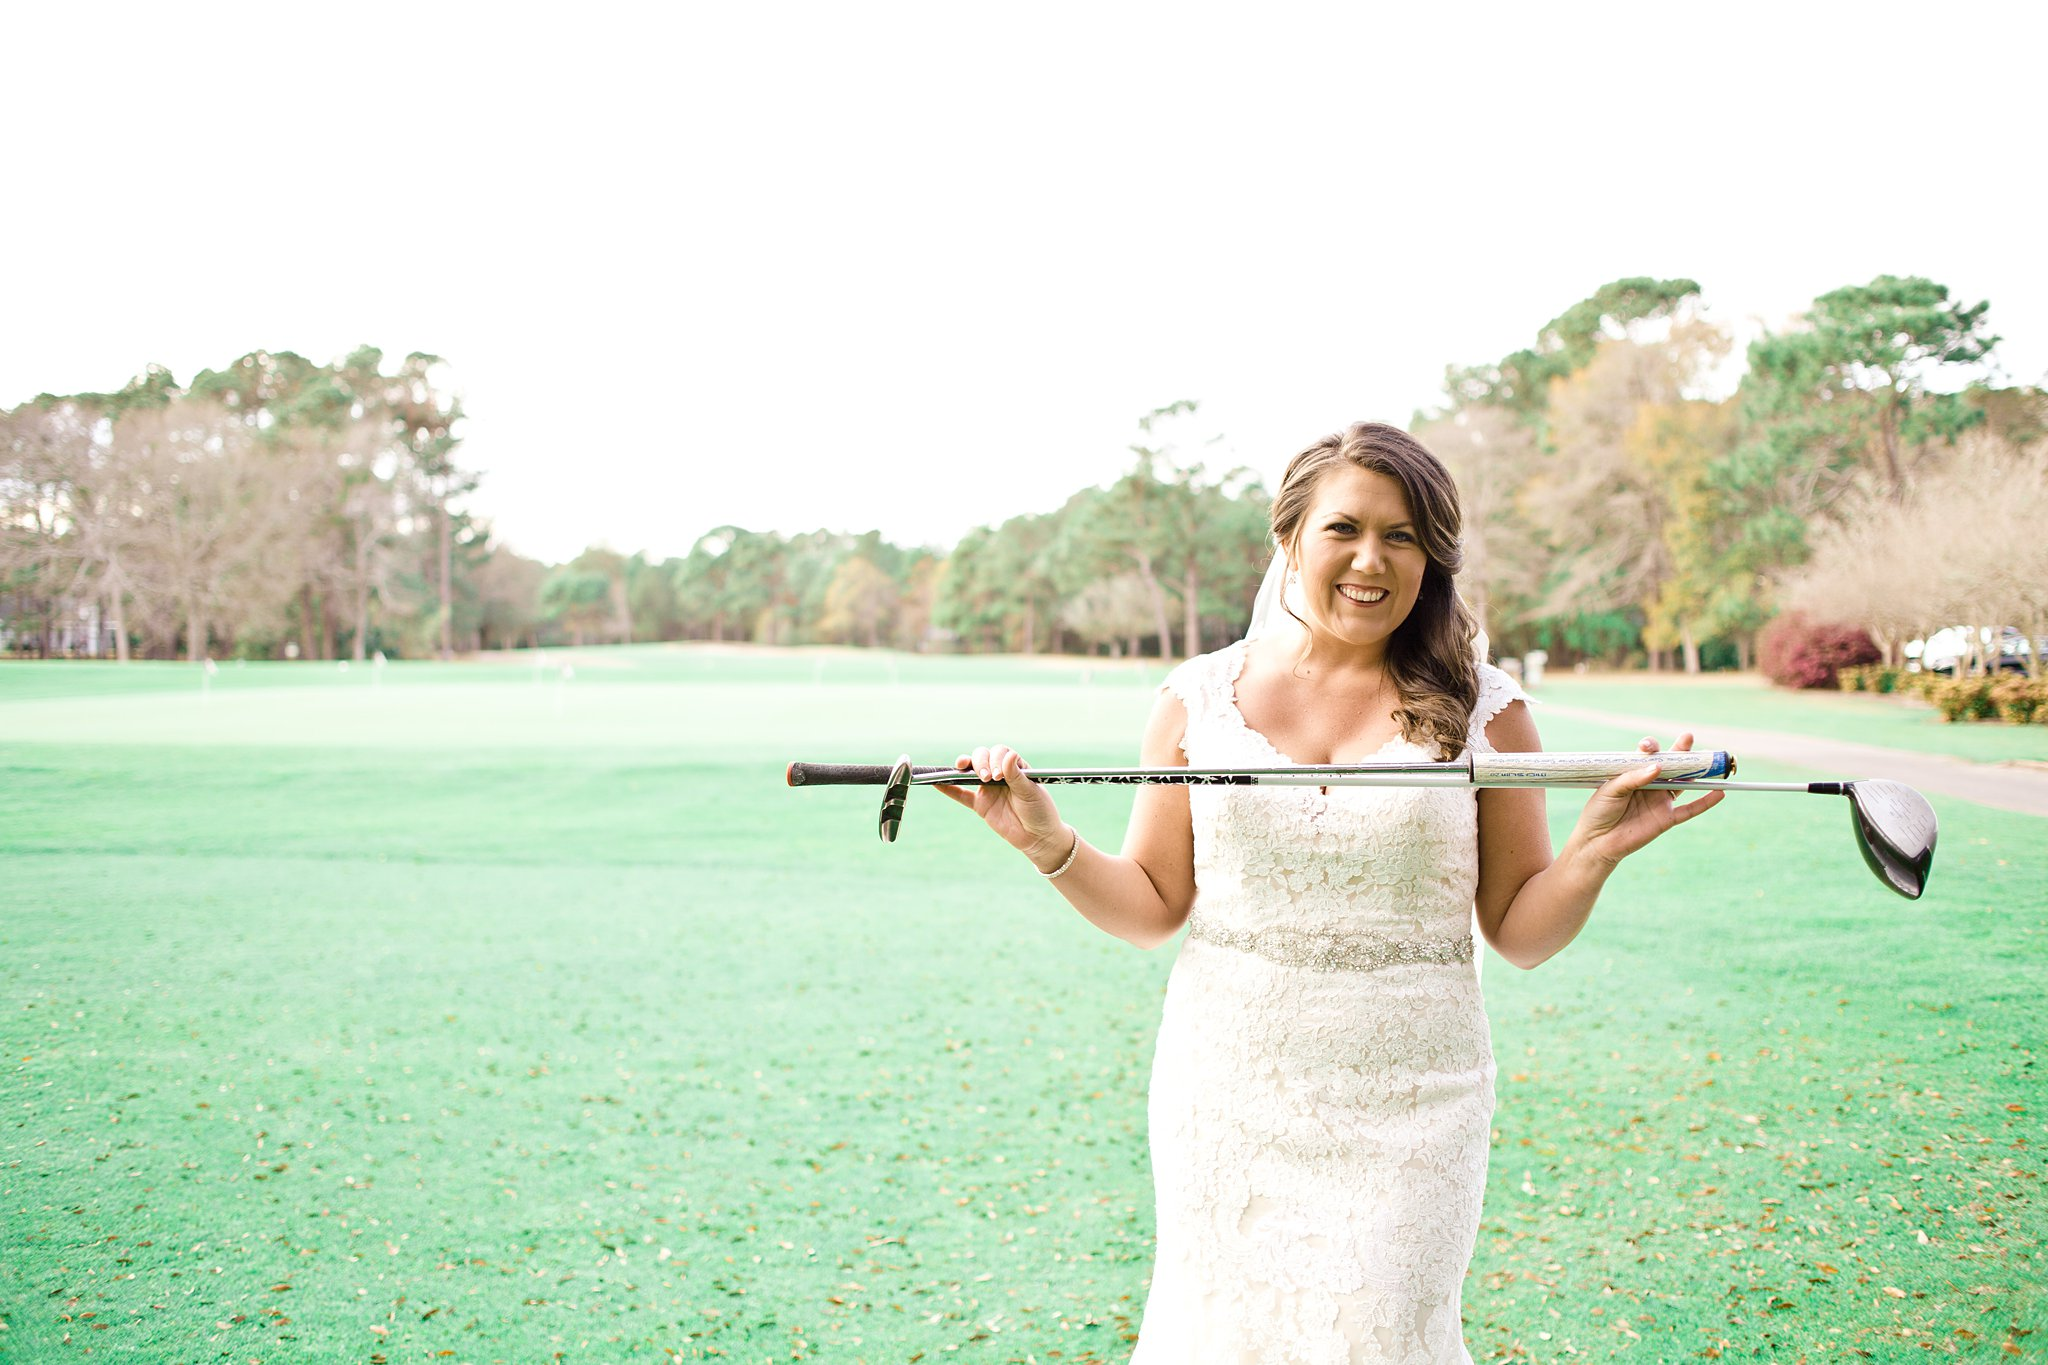 litchfield-golf-country-club-bridal-session-pawleys-island-sc-photos_0136.jpg